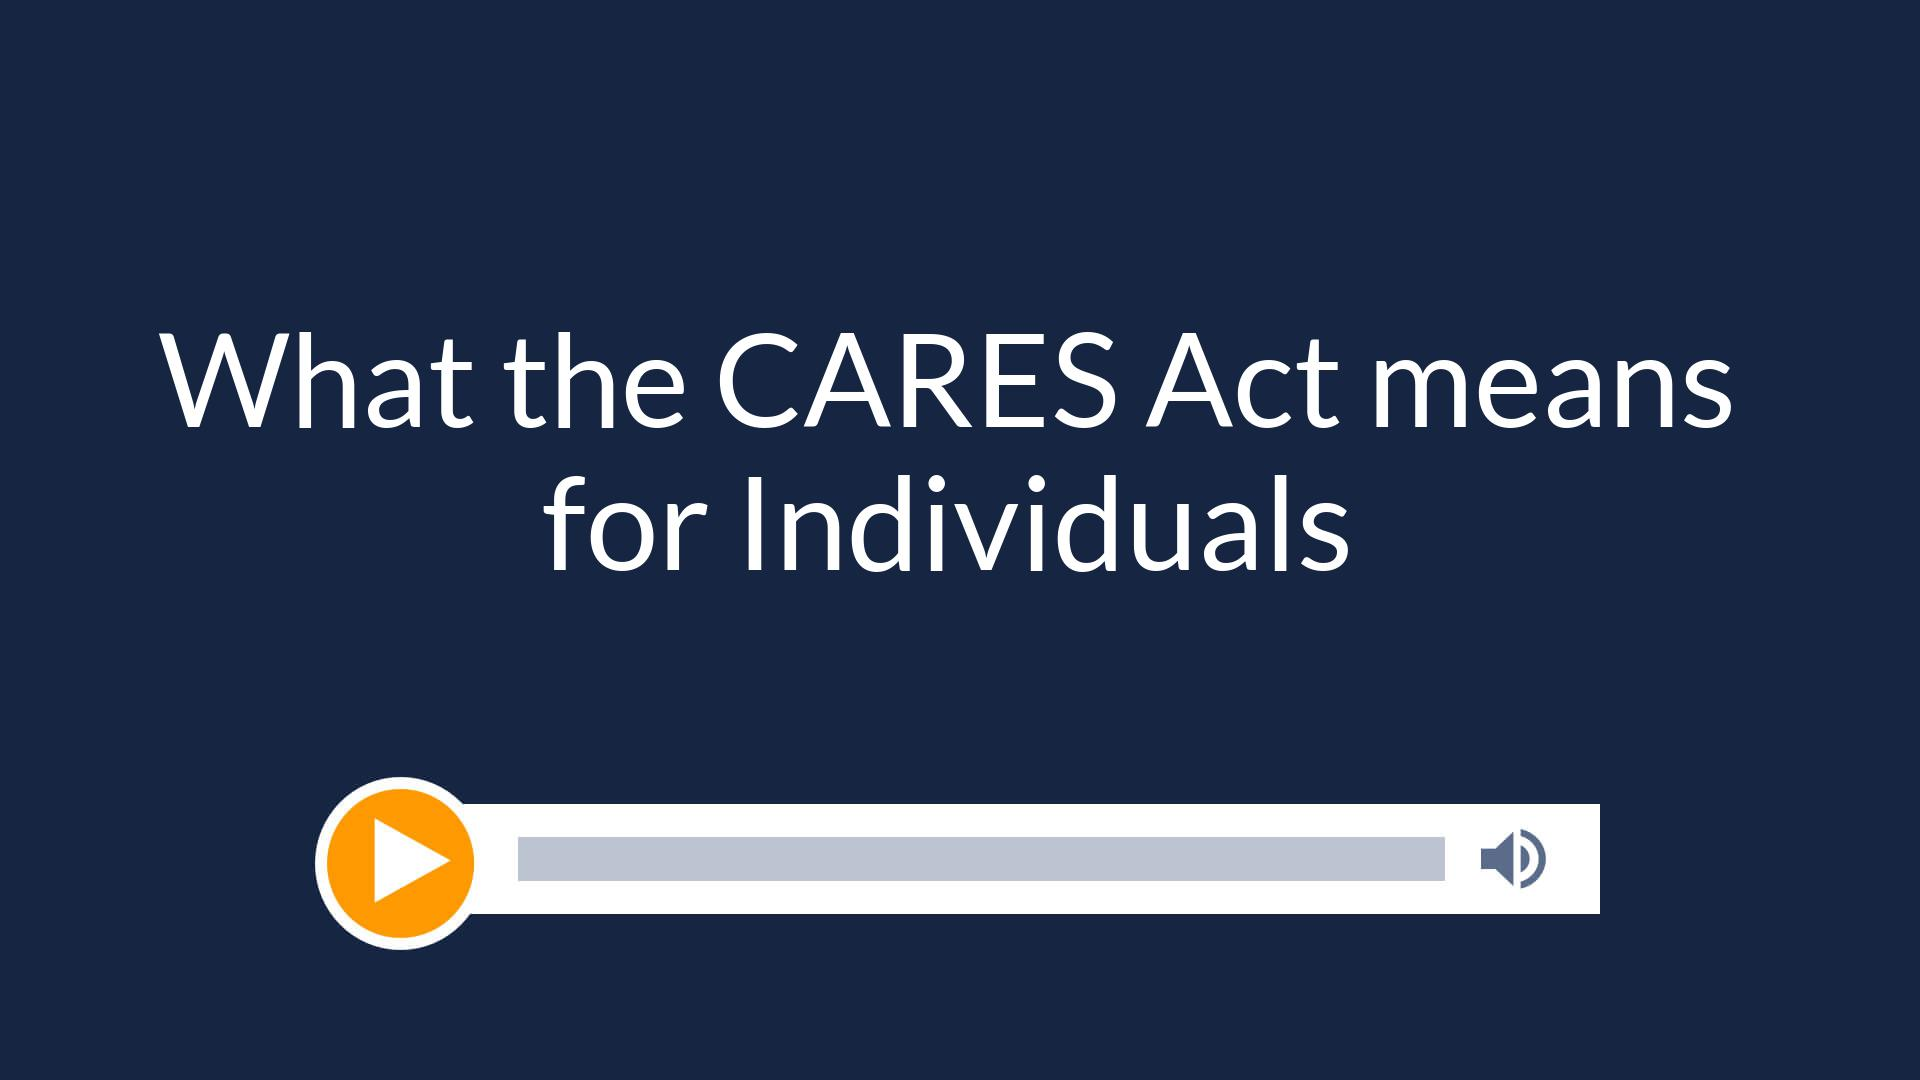 What the CARES Act means for Individuals